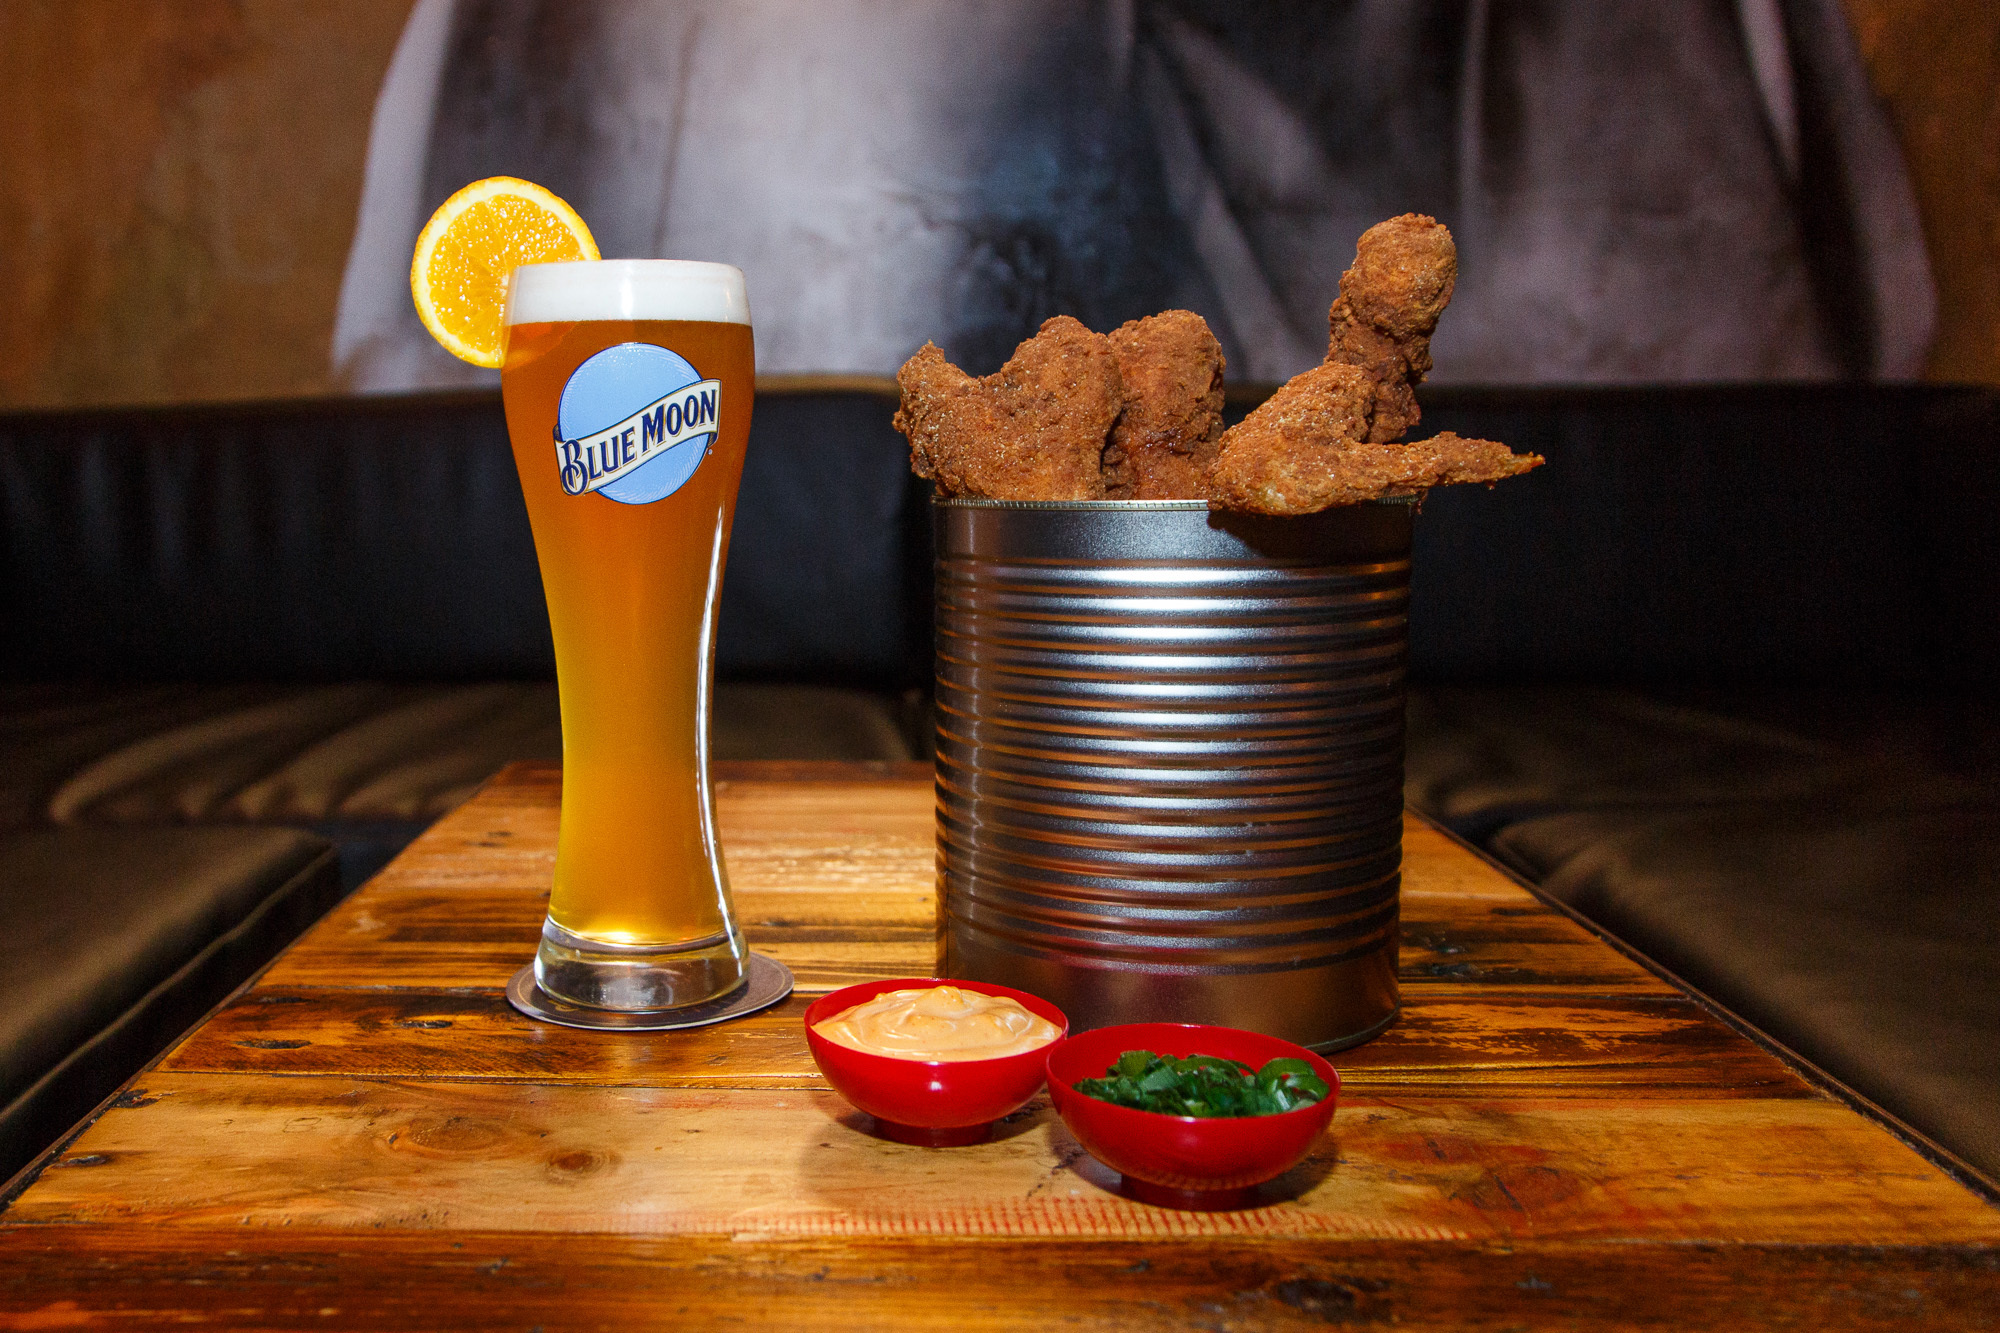 A bucket of fried chicken and a Blue Moon beer